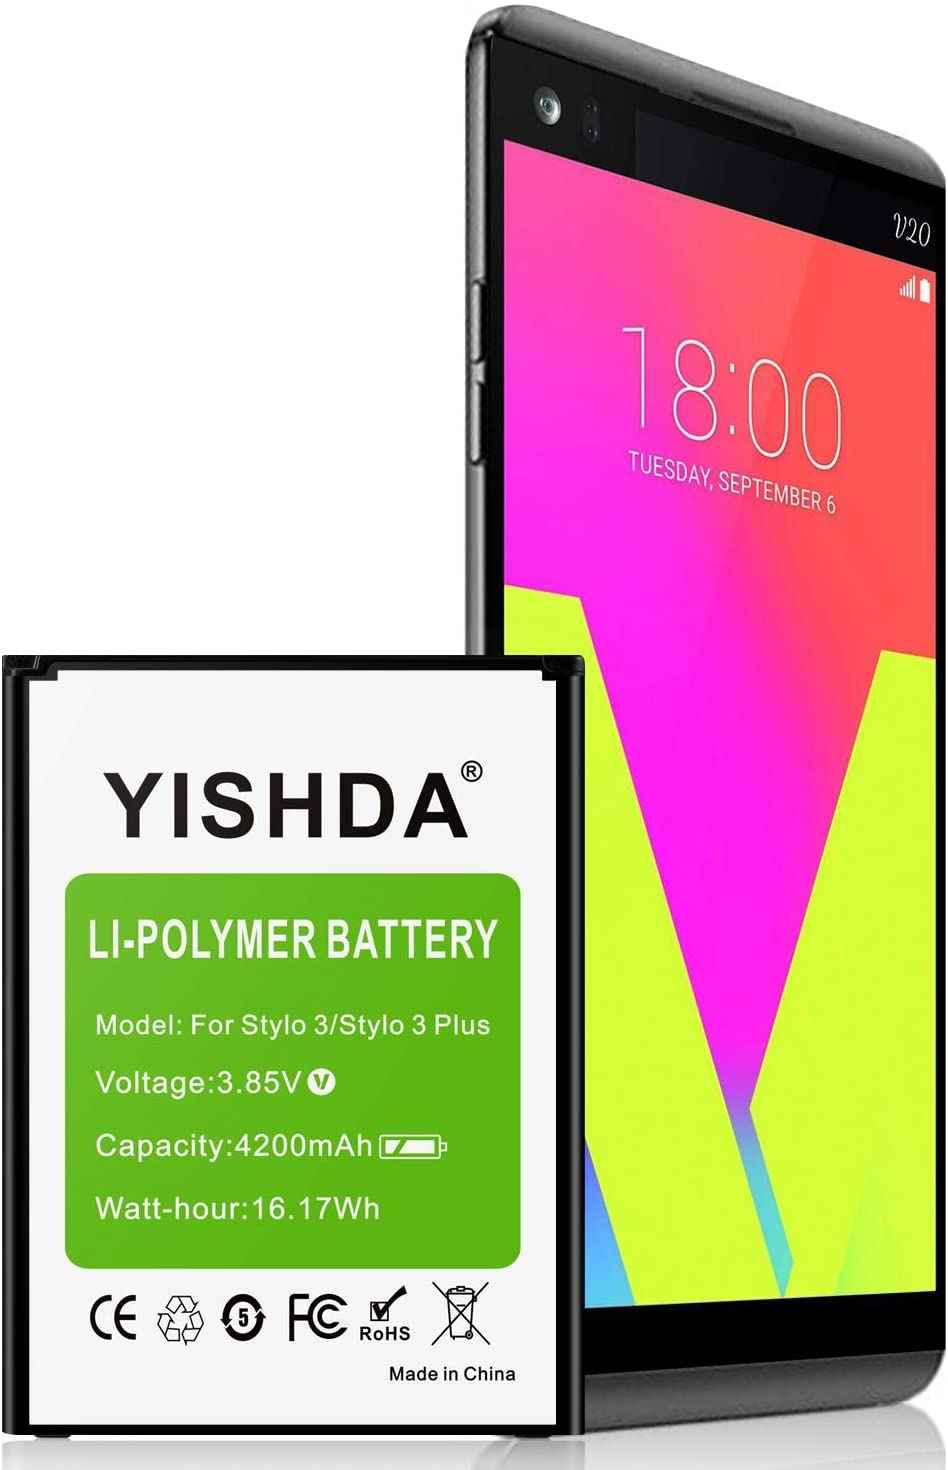 LG Stylo 3 Battery, YISHDA 4200mAh Li-Polymer Replacement Battery for LG Stylo 3, LG Stylo 3 Plus Cell Phone | LG Stylo 3 Spare Battery [18 Month Warranty]